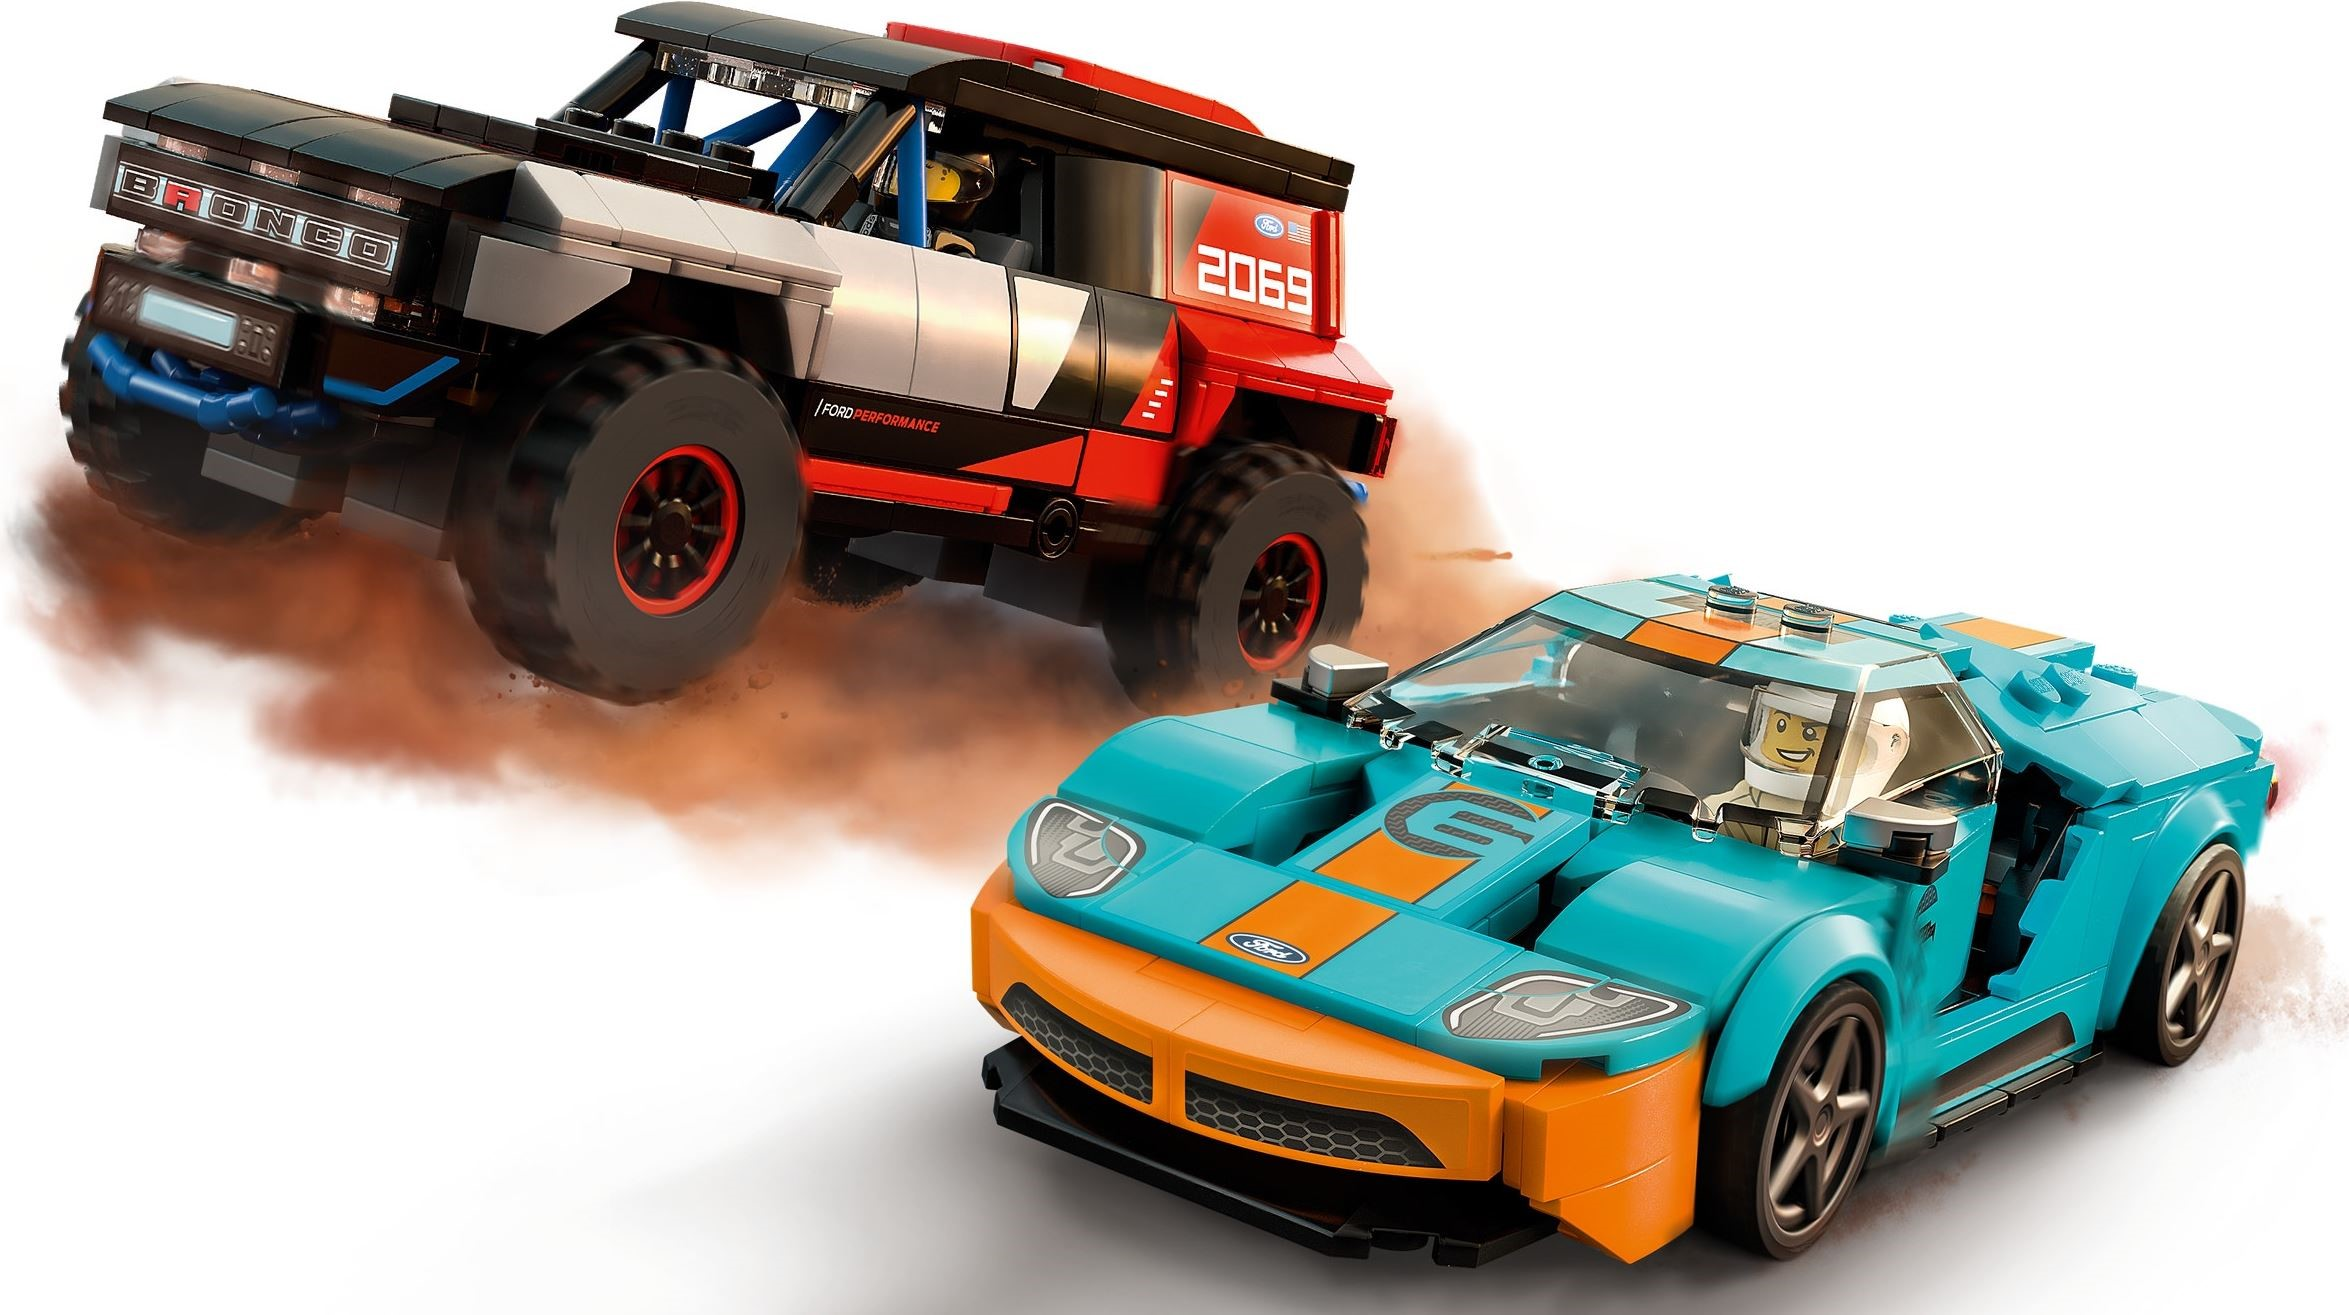 76905  LEGO Speed Champions: Ford GT Heritage Edition and Bronco R - Đồ chơi LEGO